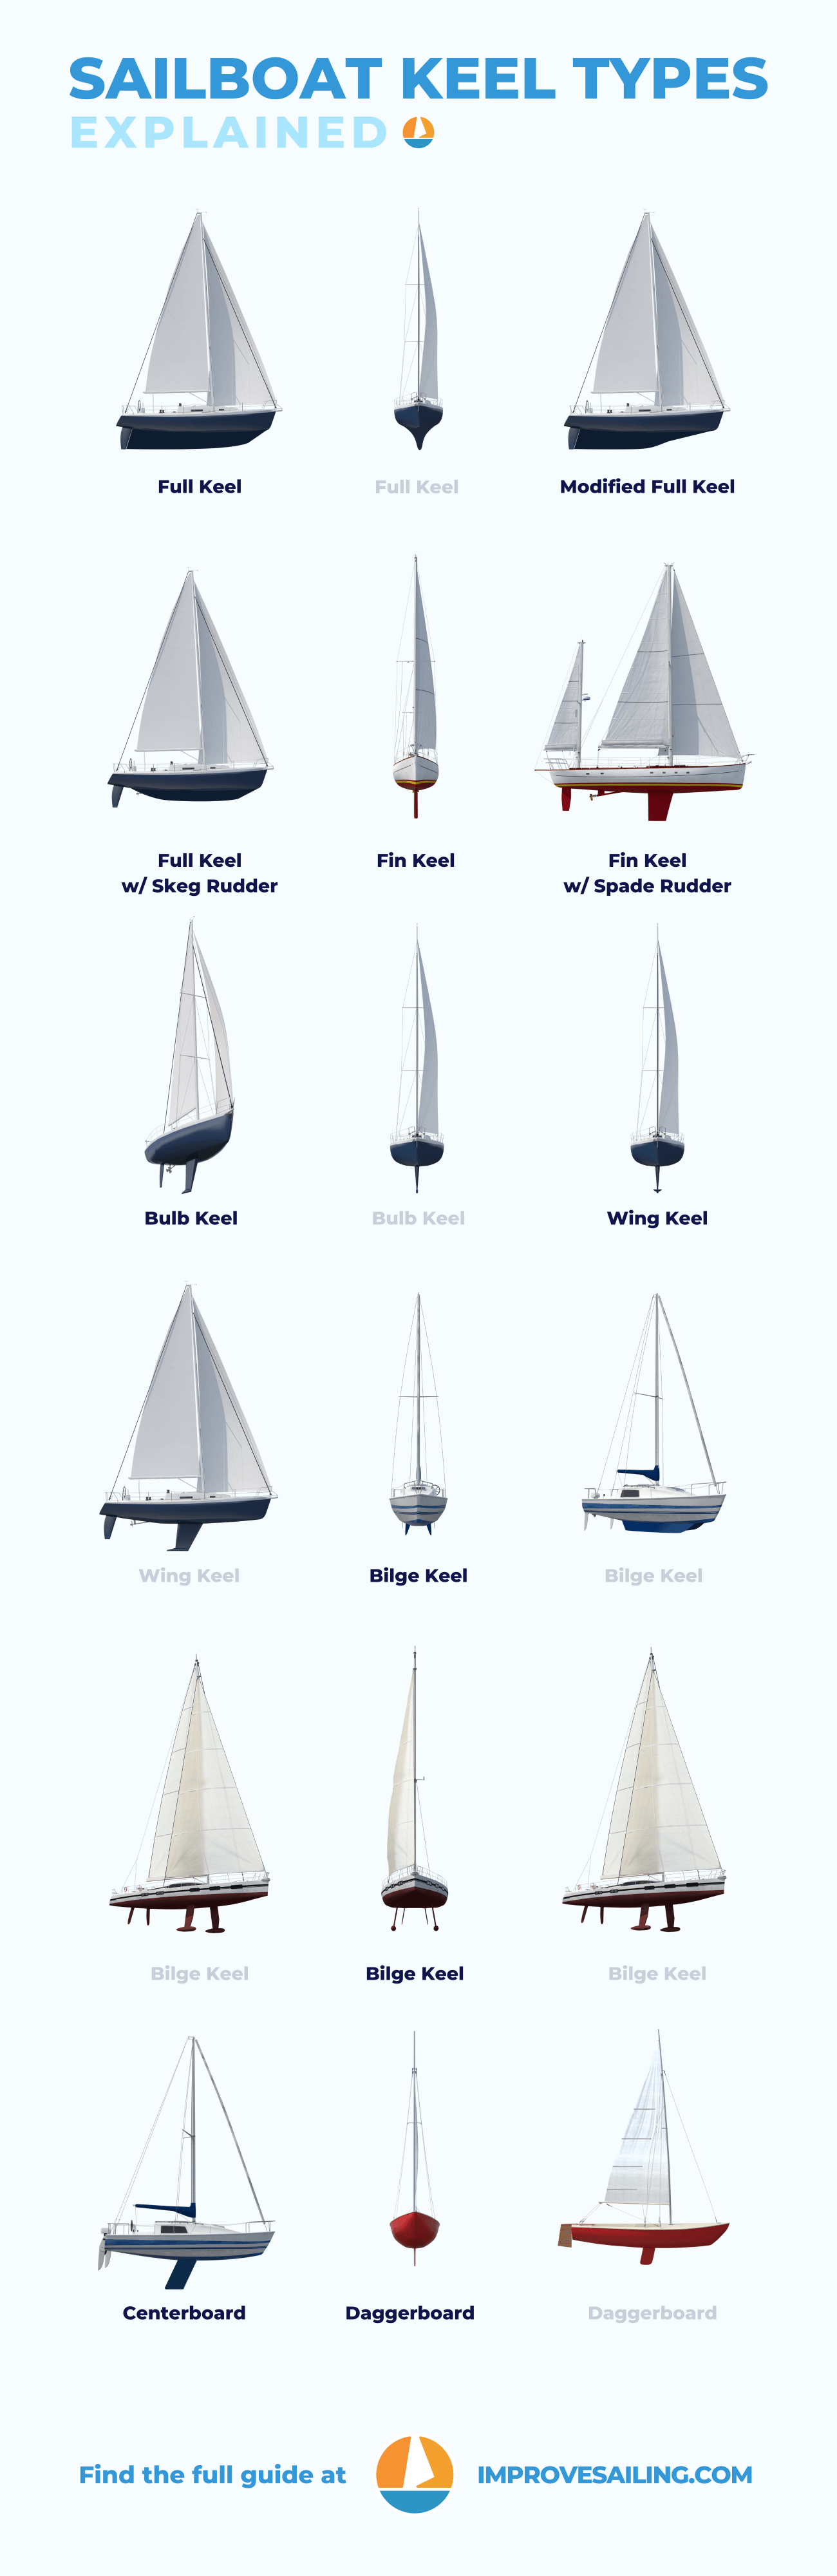 Pinterest image for Sailboat Keel Types: Illustrated Guide (Bilge, Fin, Full)